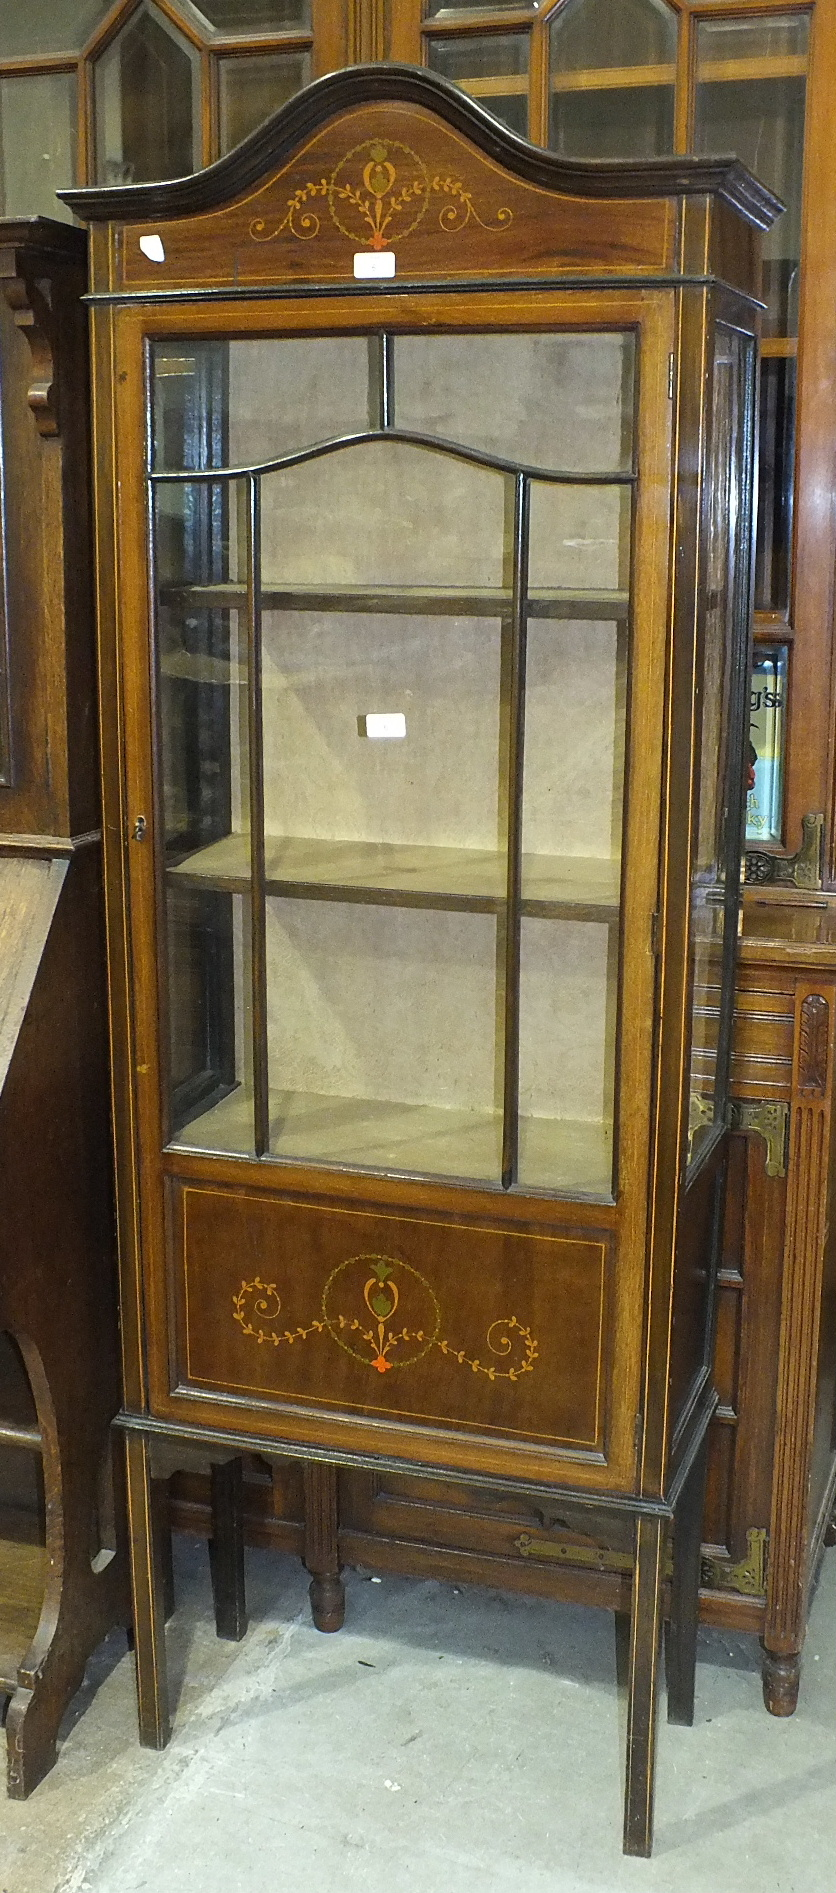 Lot 6 - An Edwardian inlaid mahogany display cabinet fitted with a single glazed door and glazed sides, on